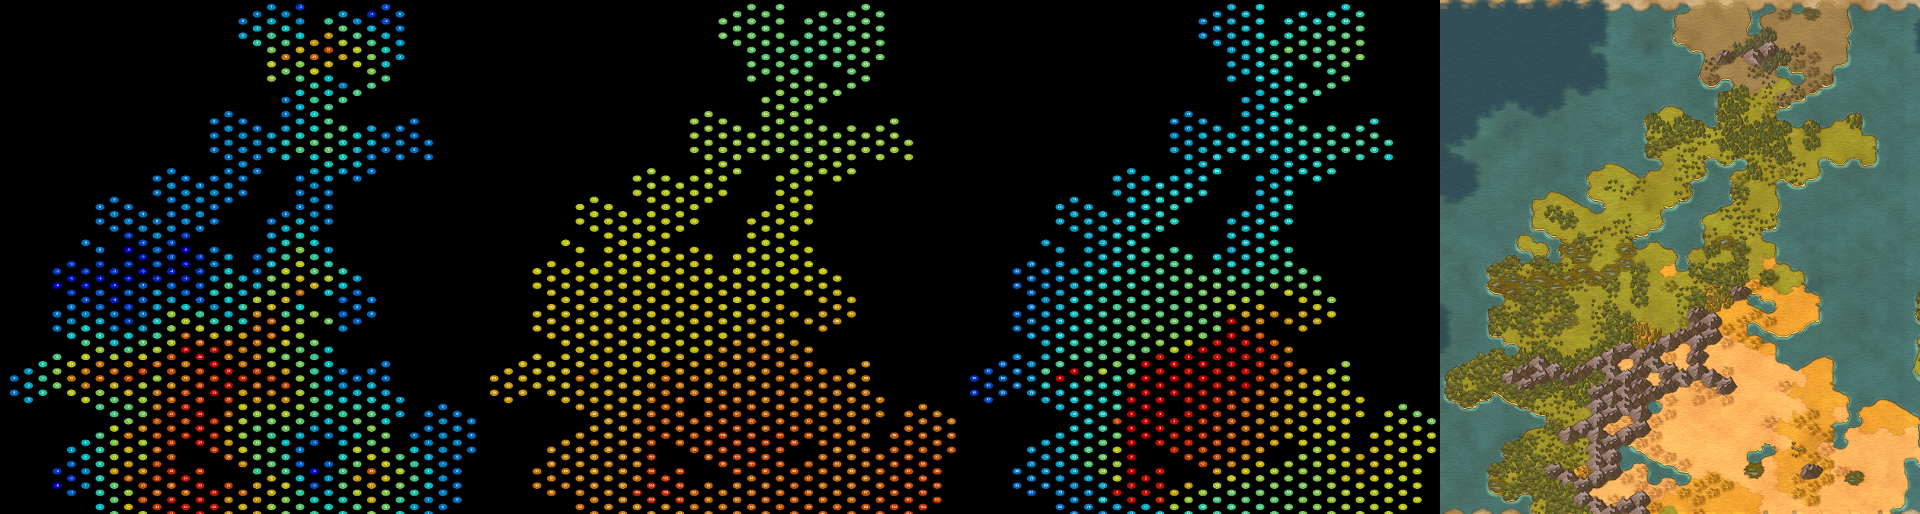 Map generation consists of several simulation layers.